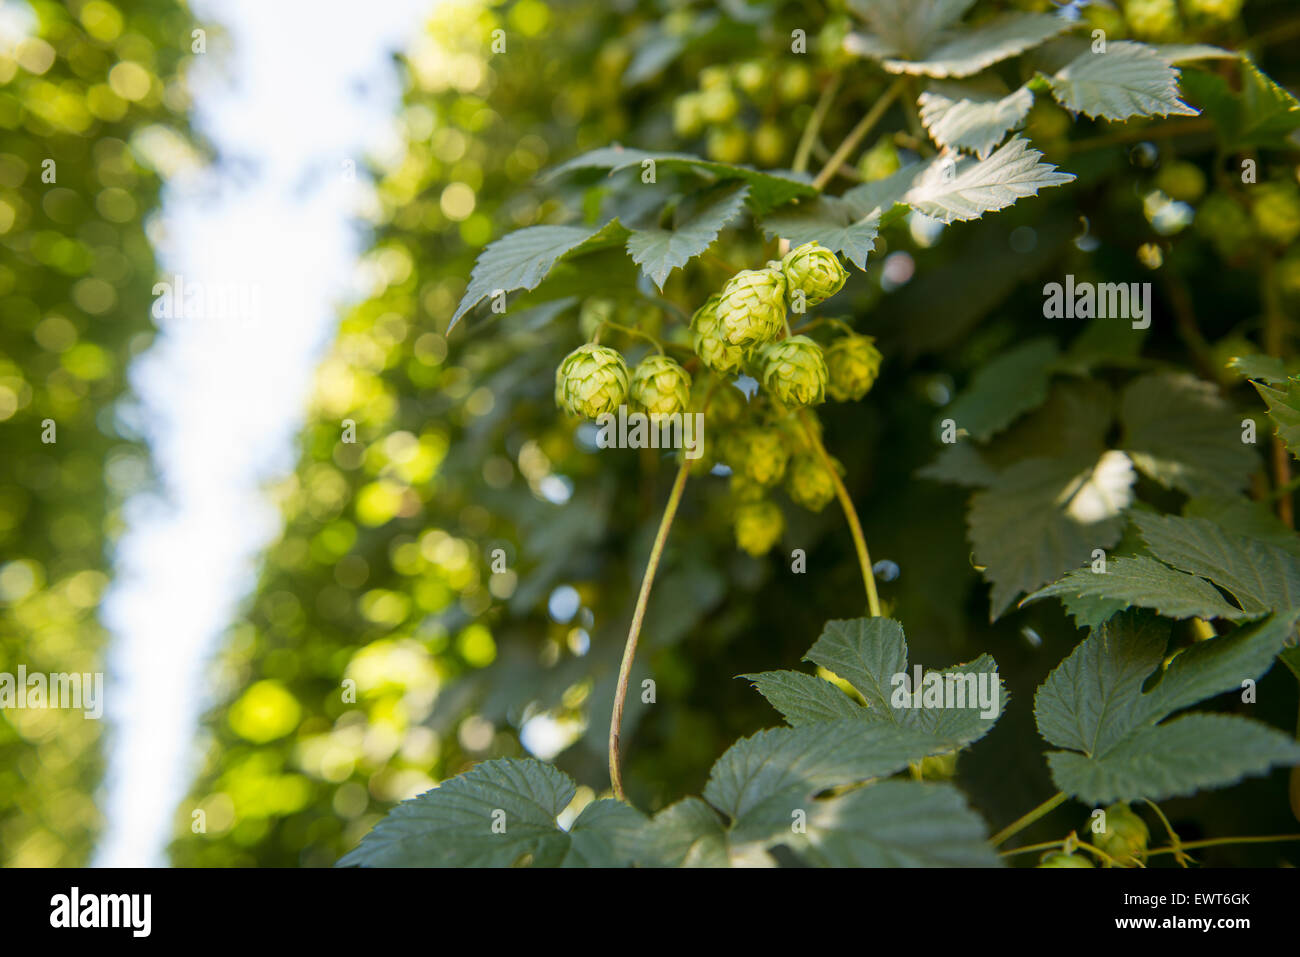 George, South Africa - Hops on farm - Stock Image